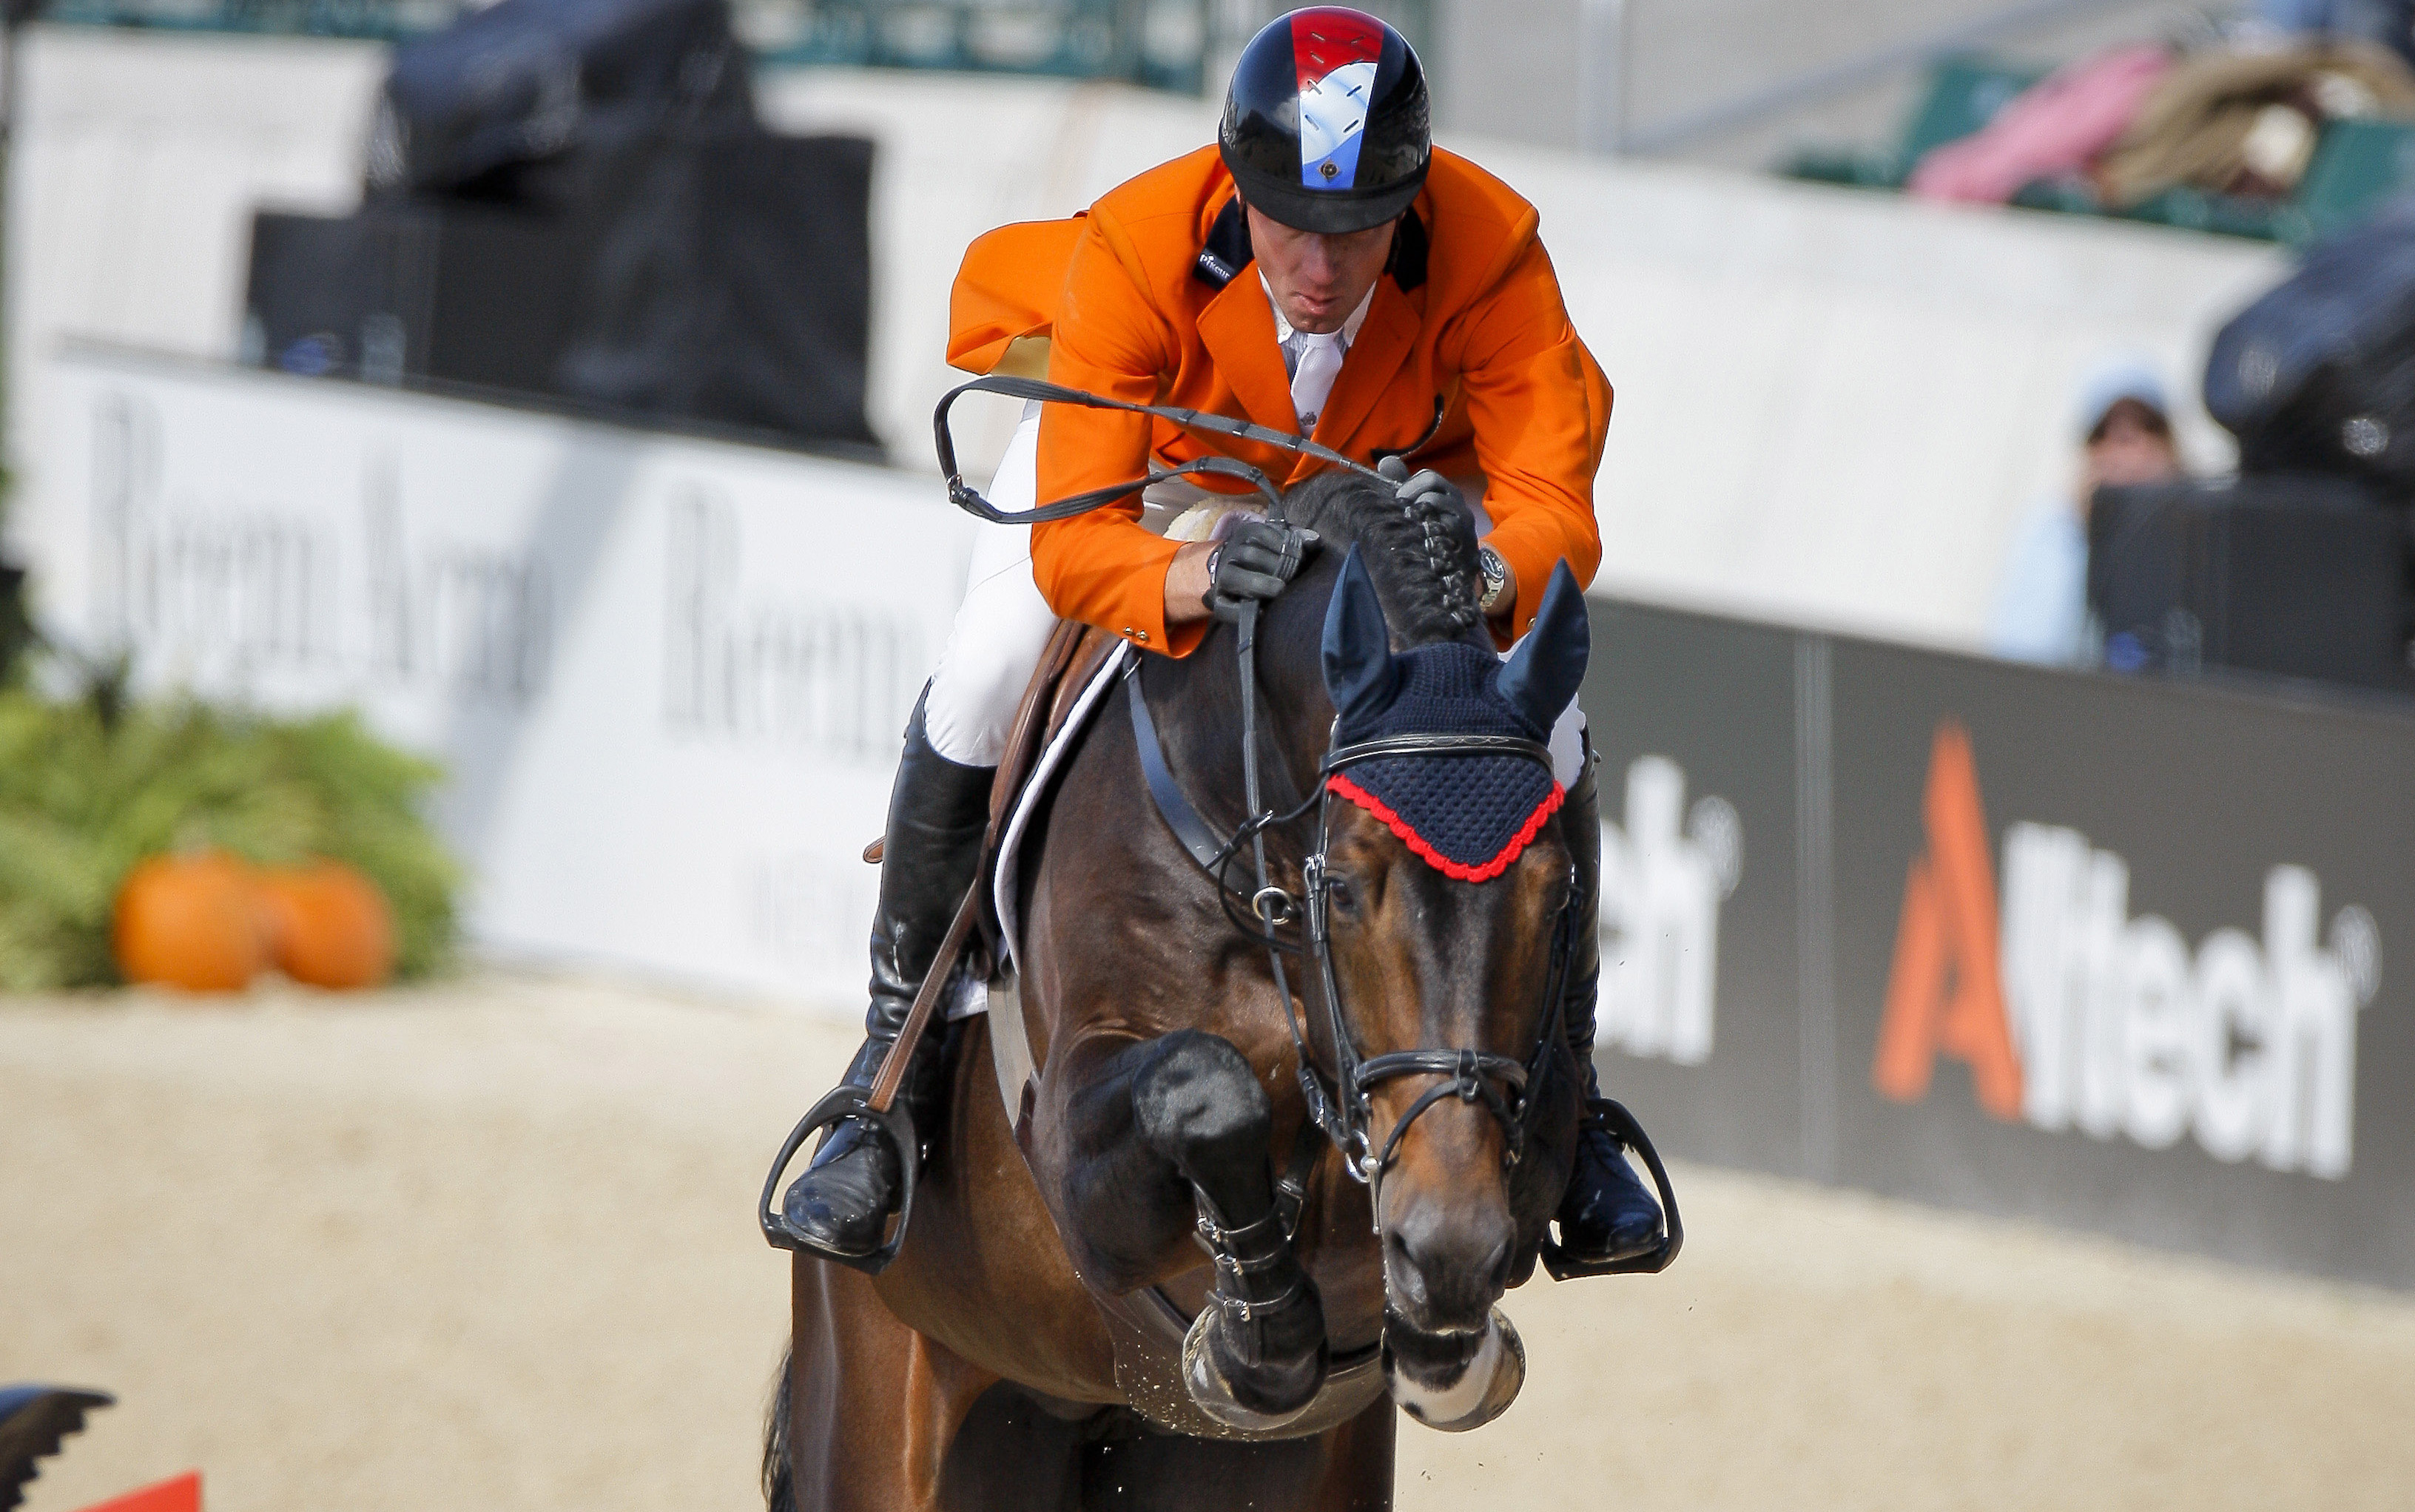 Nederland 'slechts' zesde in Nations Cup Rome